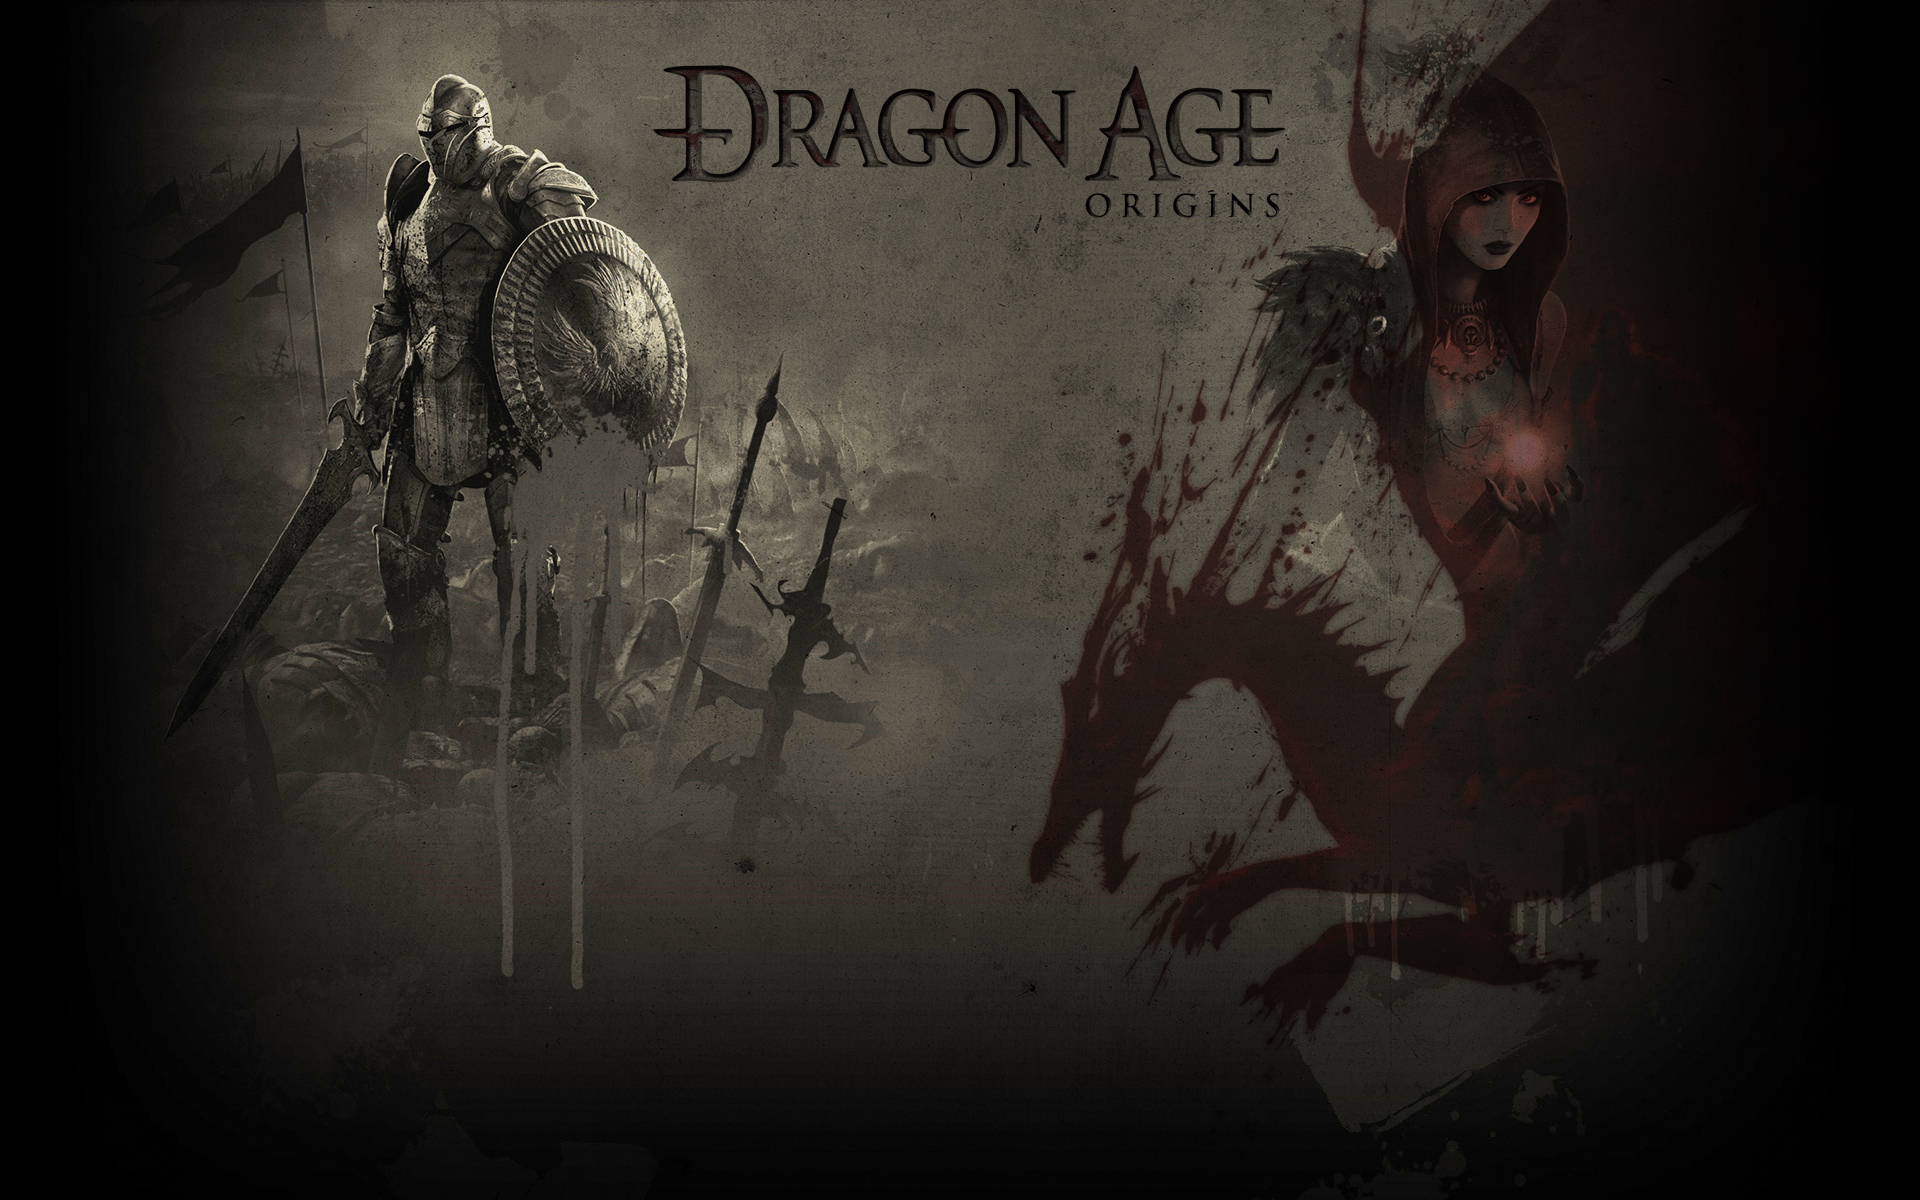 Dragon Age Origins wallpaper by fantasyfreak - Desktop Wallpaper